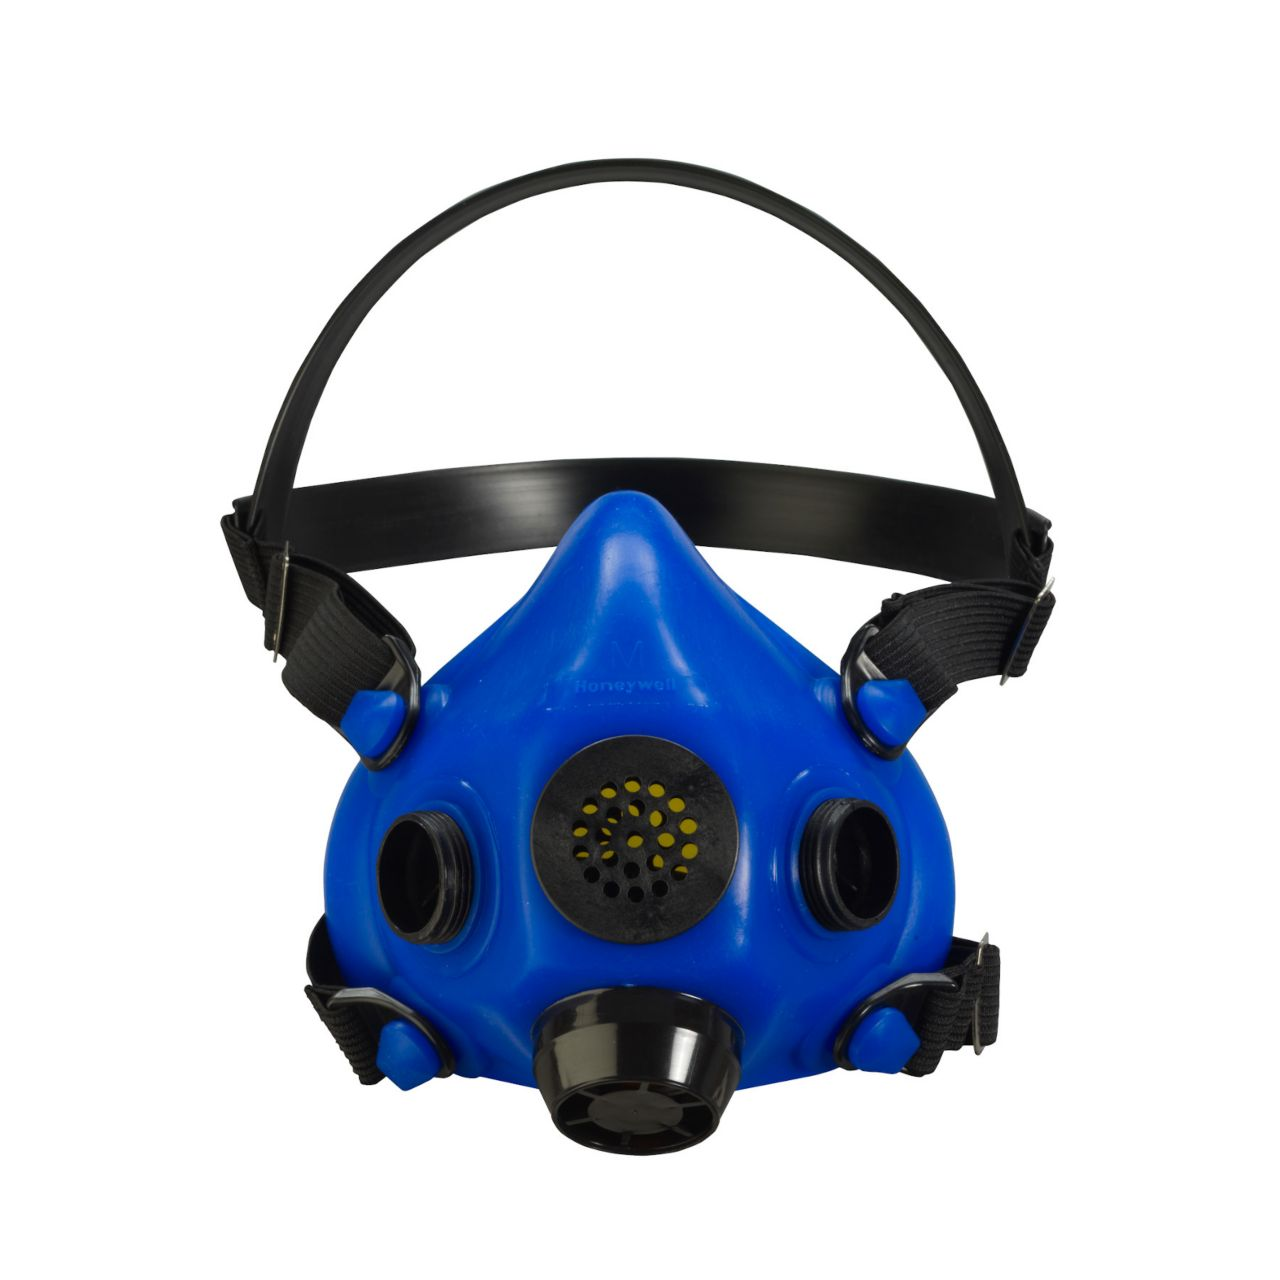 sps-safety-hs-honeywell-north-ru8500-half-mask-blue